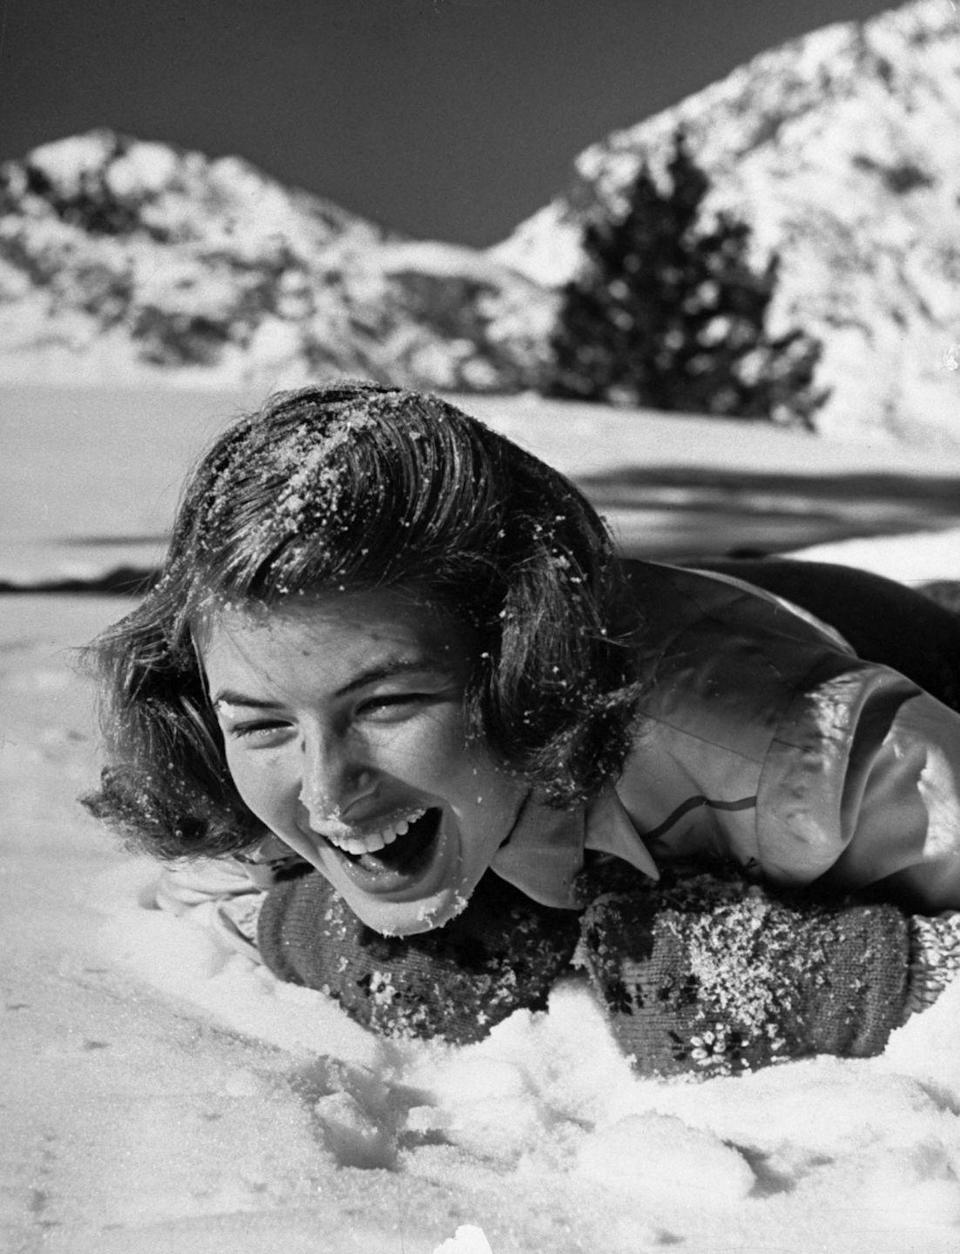 <p>Actress Ingrid Bergman laughs as she's hit with a snowball by an unseen playmate during a ski vacation at June Lake resort, circa 1941.</p>